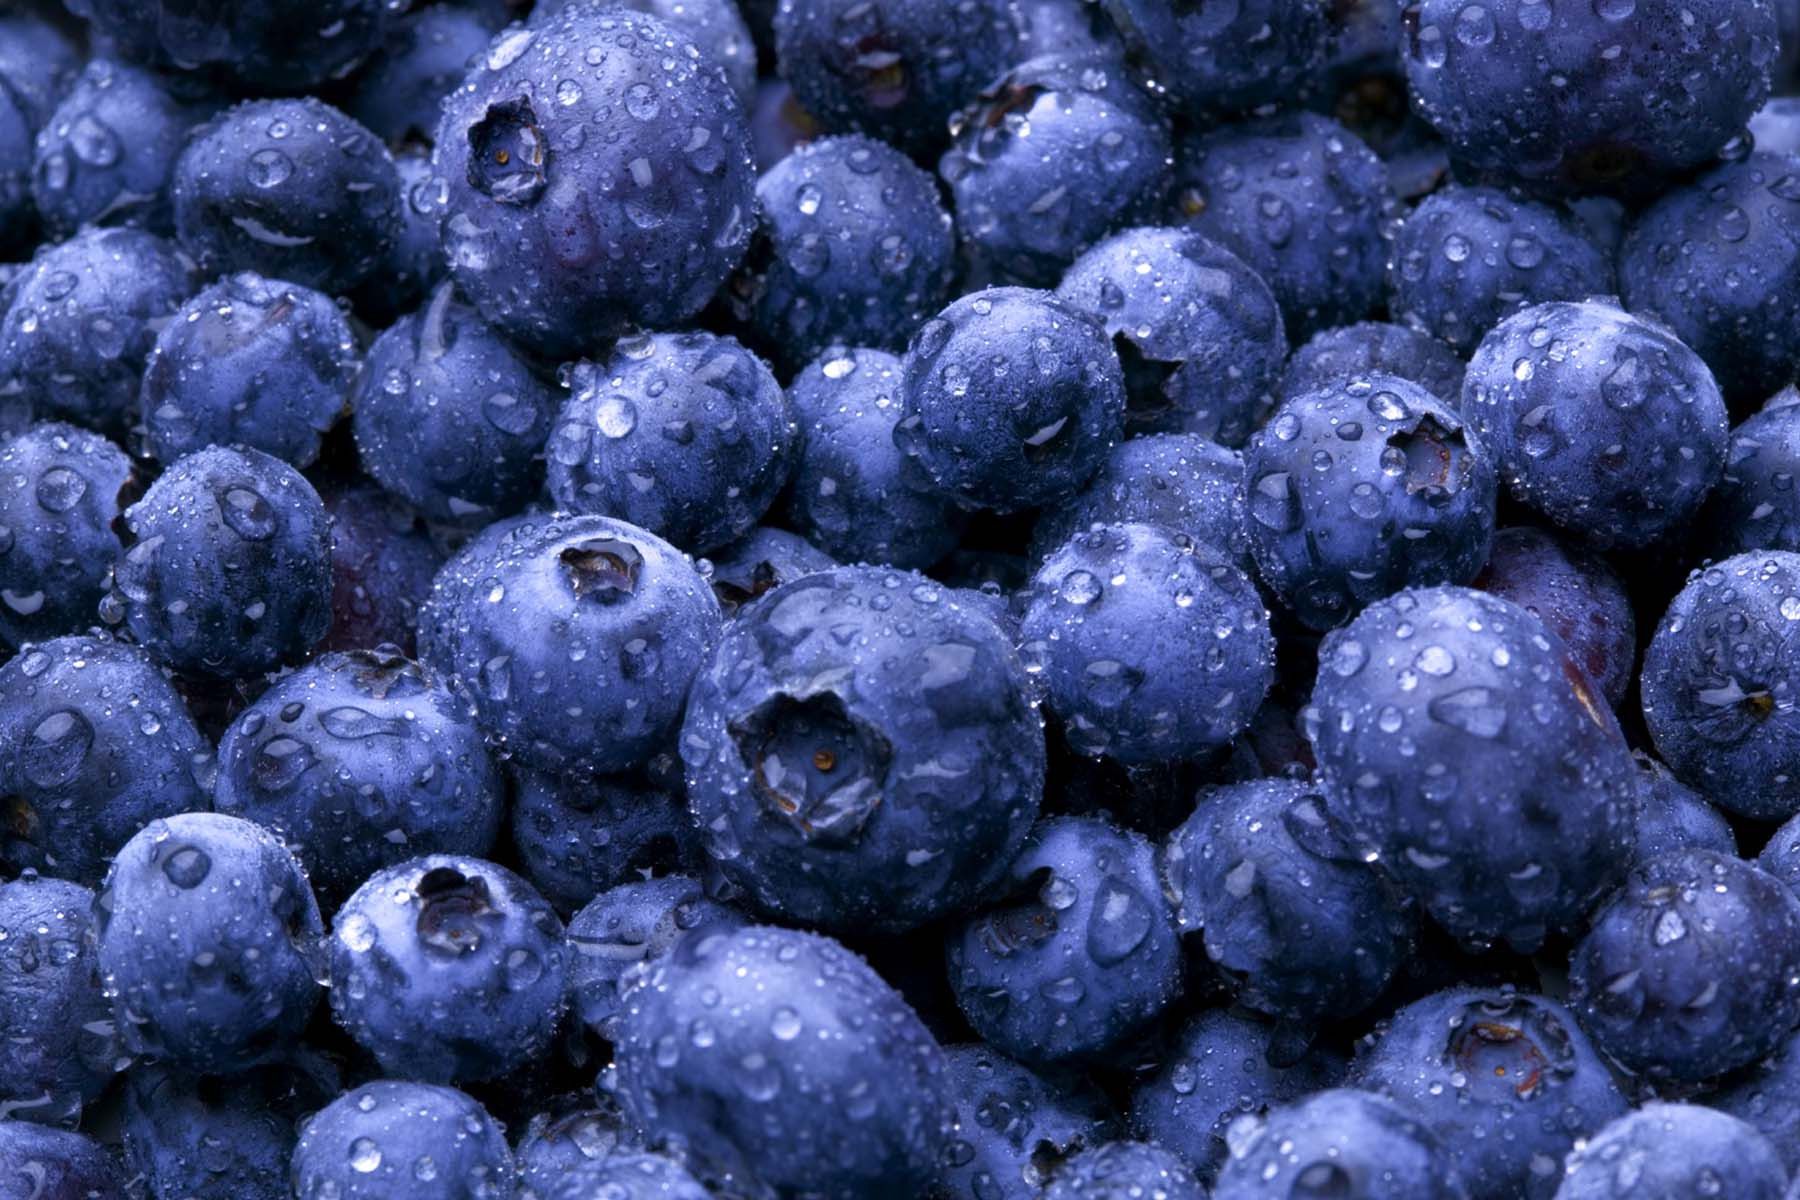 Buy fresh Blueberry Online at Best Price - Farmbucket com